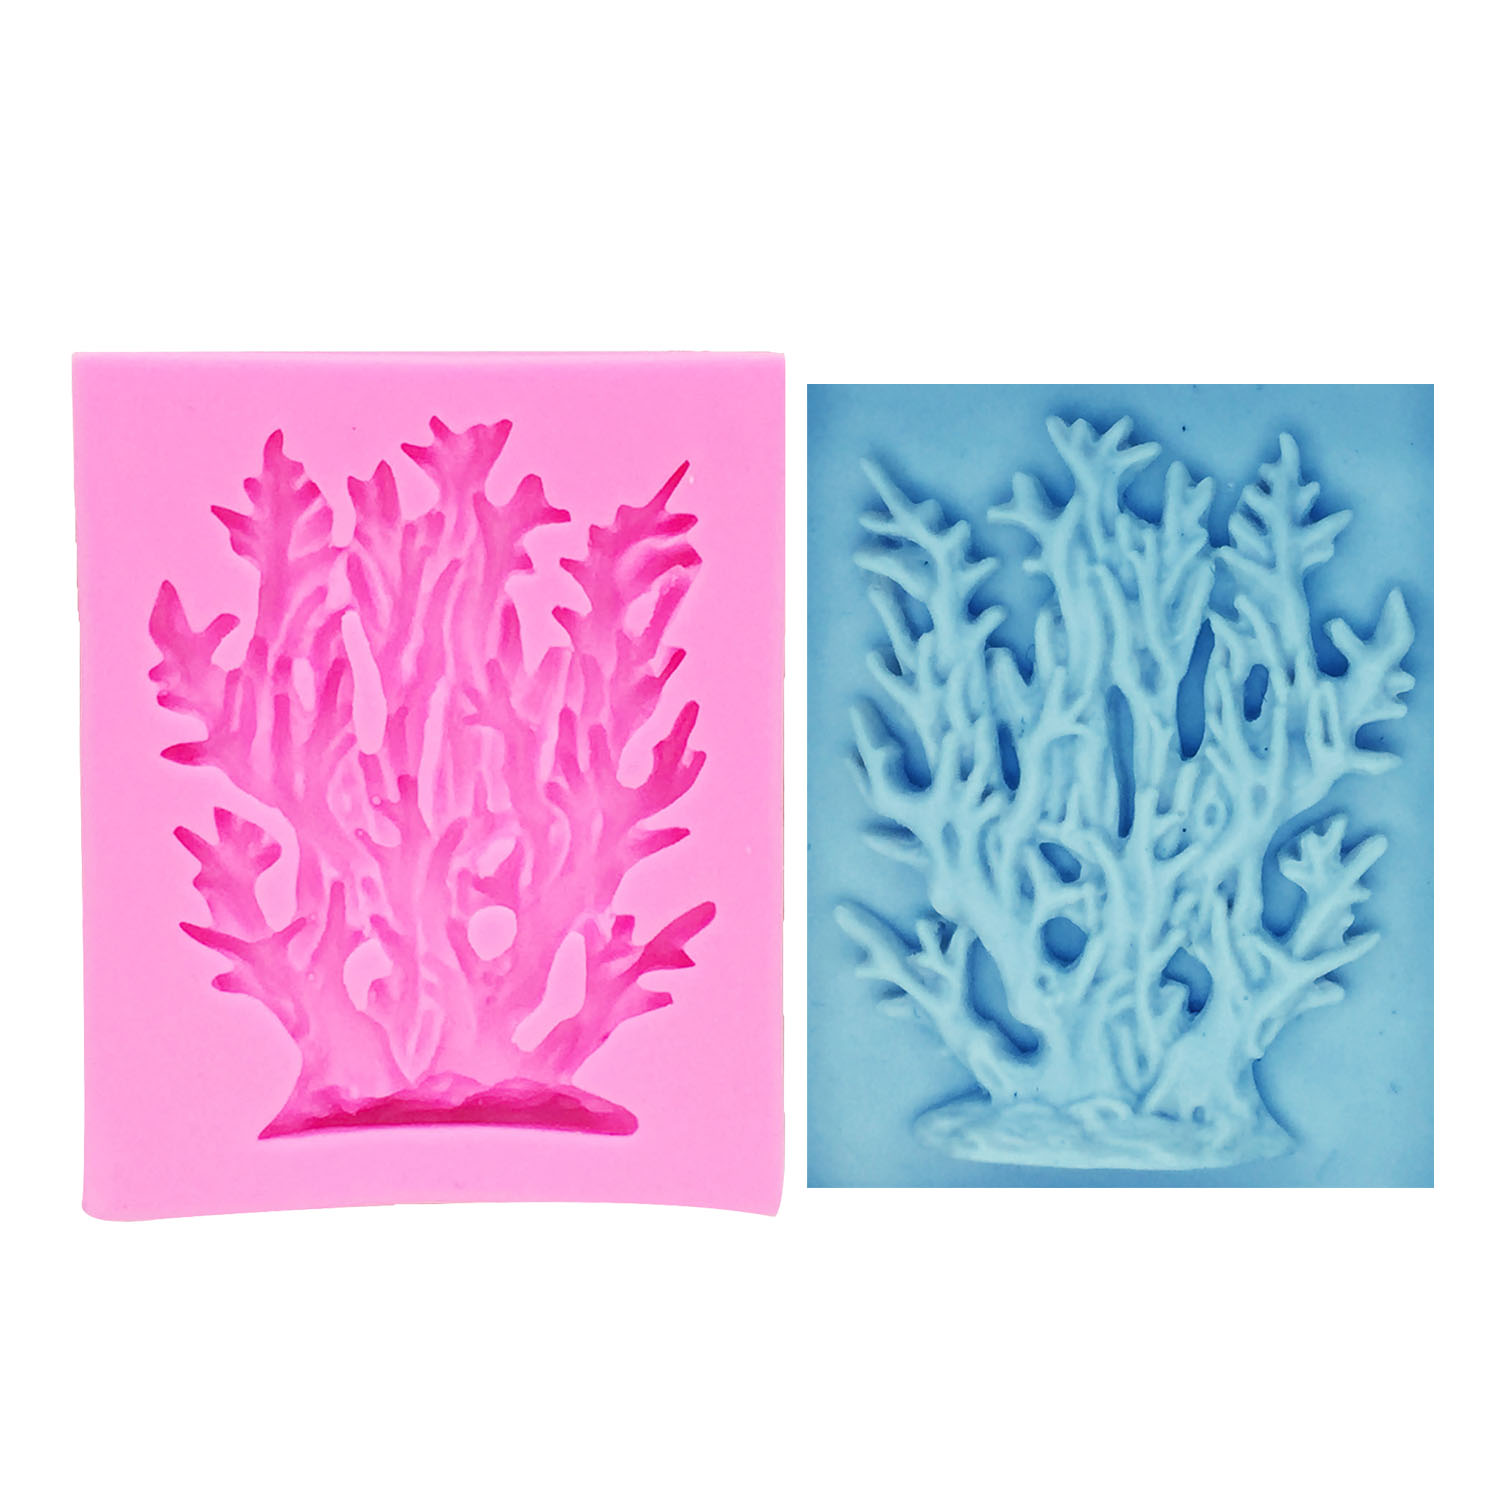 FISH SEAWEED /& CORAL Silicone Sugarcraft Cake Decorating Fondant Mould Art